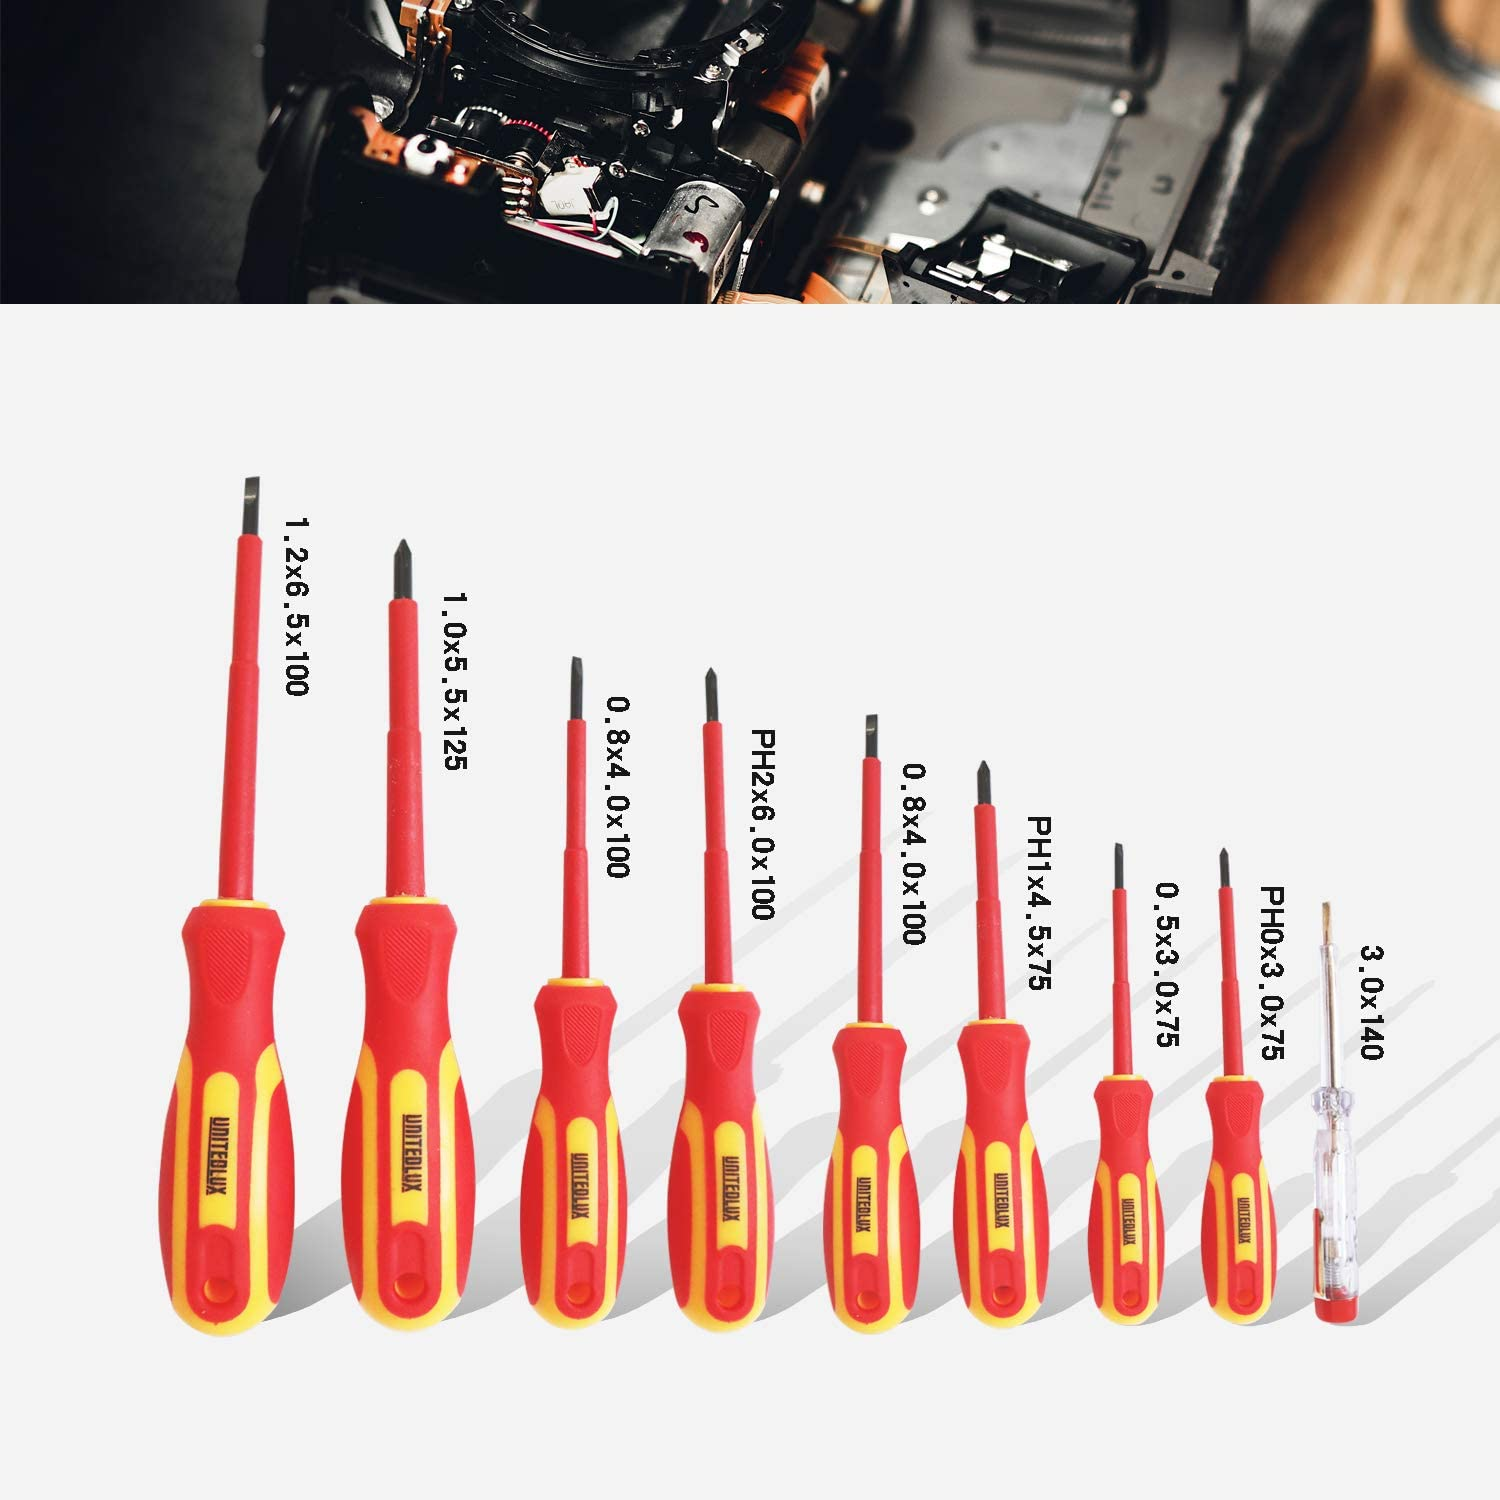 8-Piece 1000V Insulated Screwdriver Set with Magnetic Tips Phillips and Slotted Bits high voltage screwdriver set